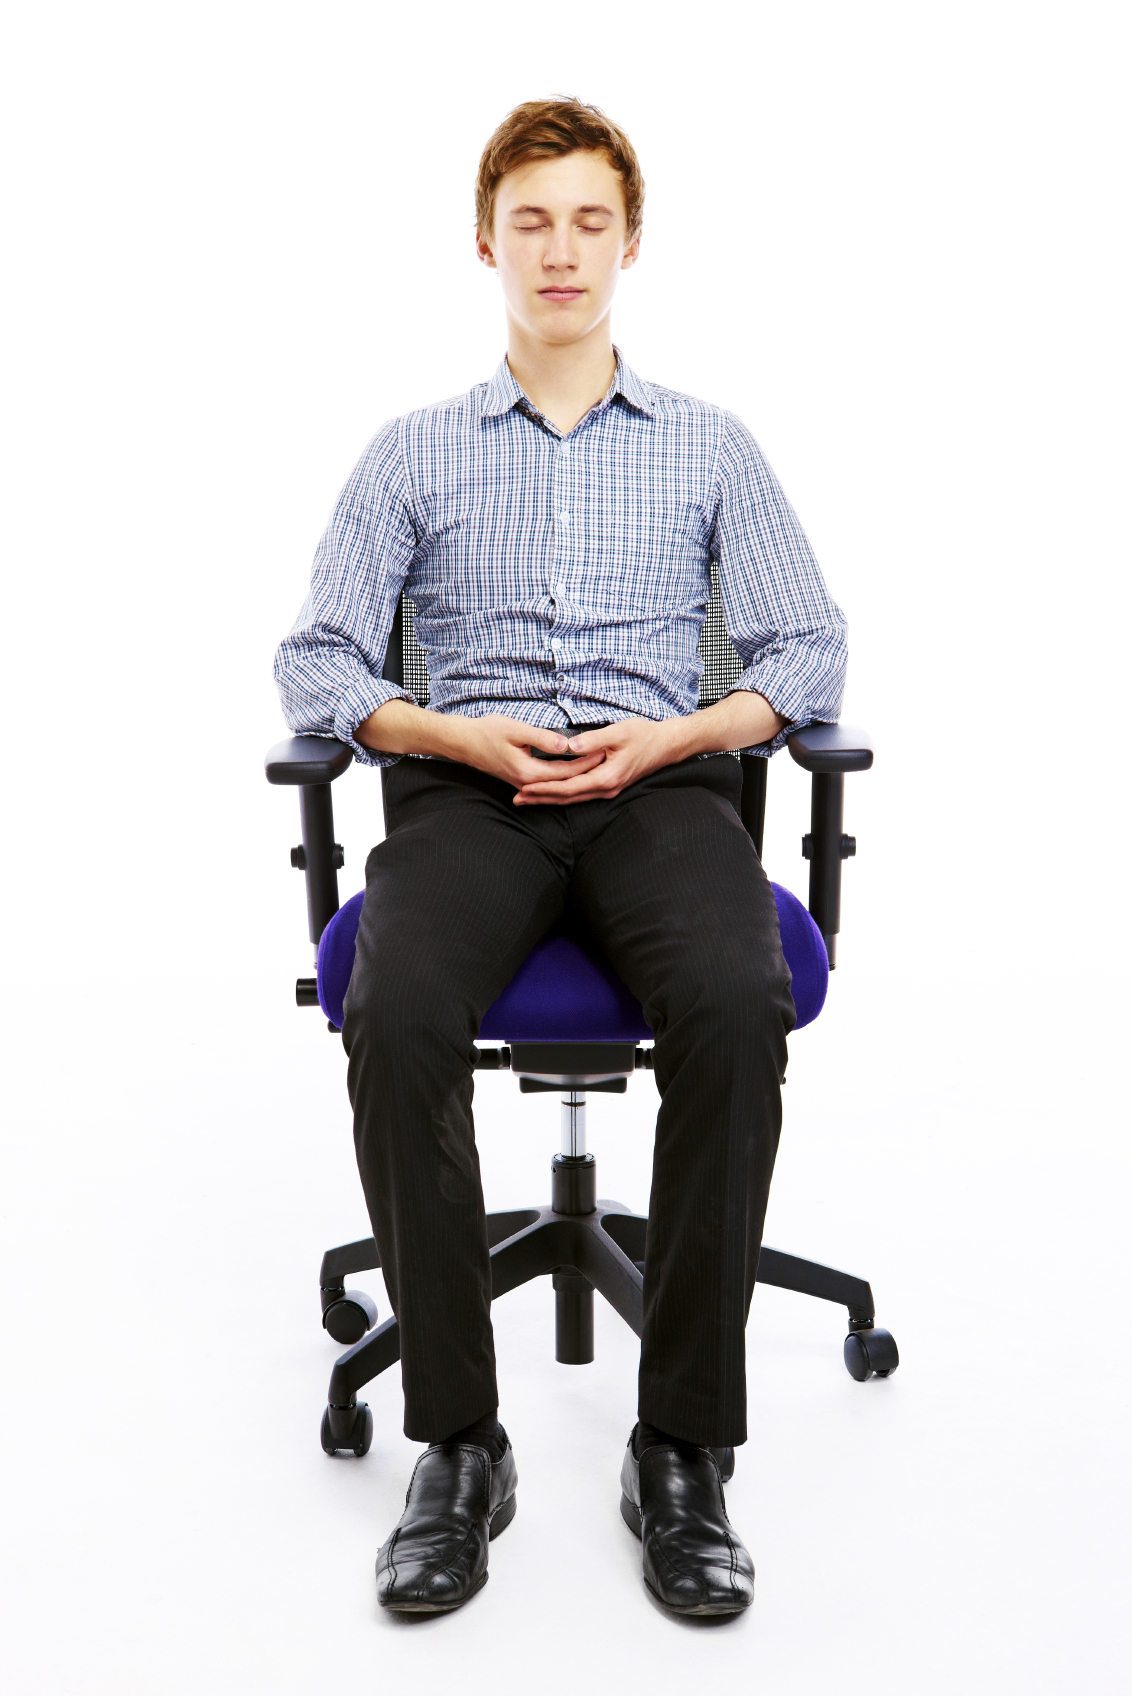 how to meditate in office. Meditation On Chair - Credit: Fusspotts.com How To Meditate In Office